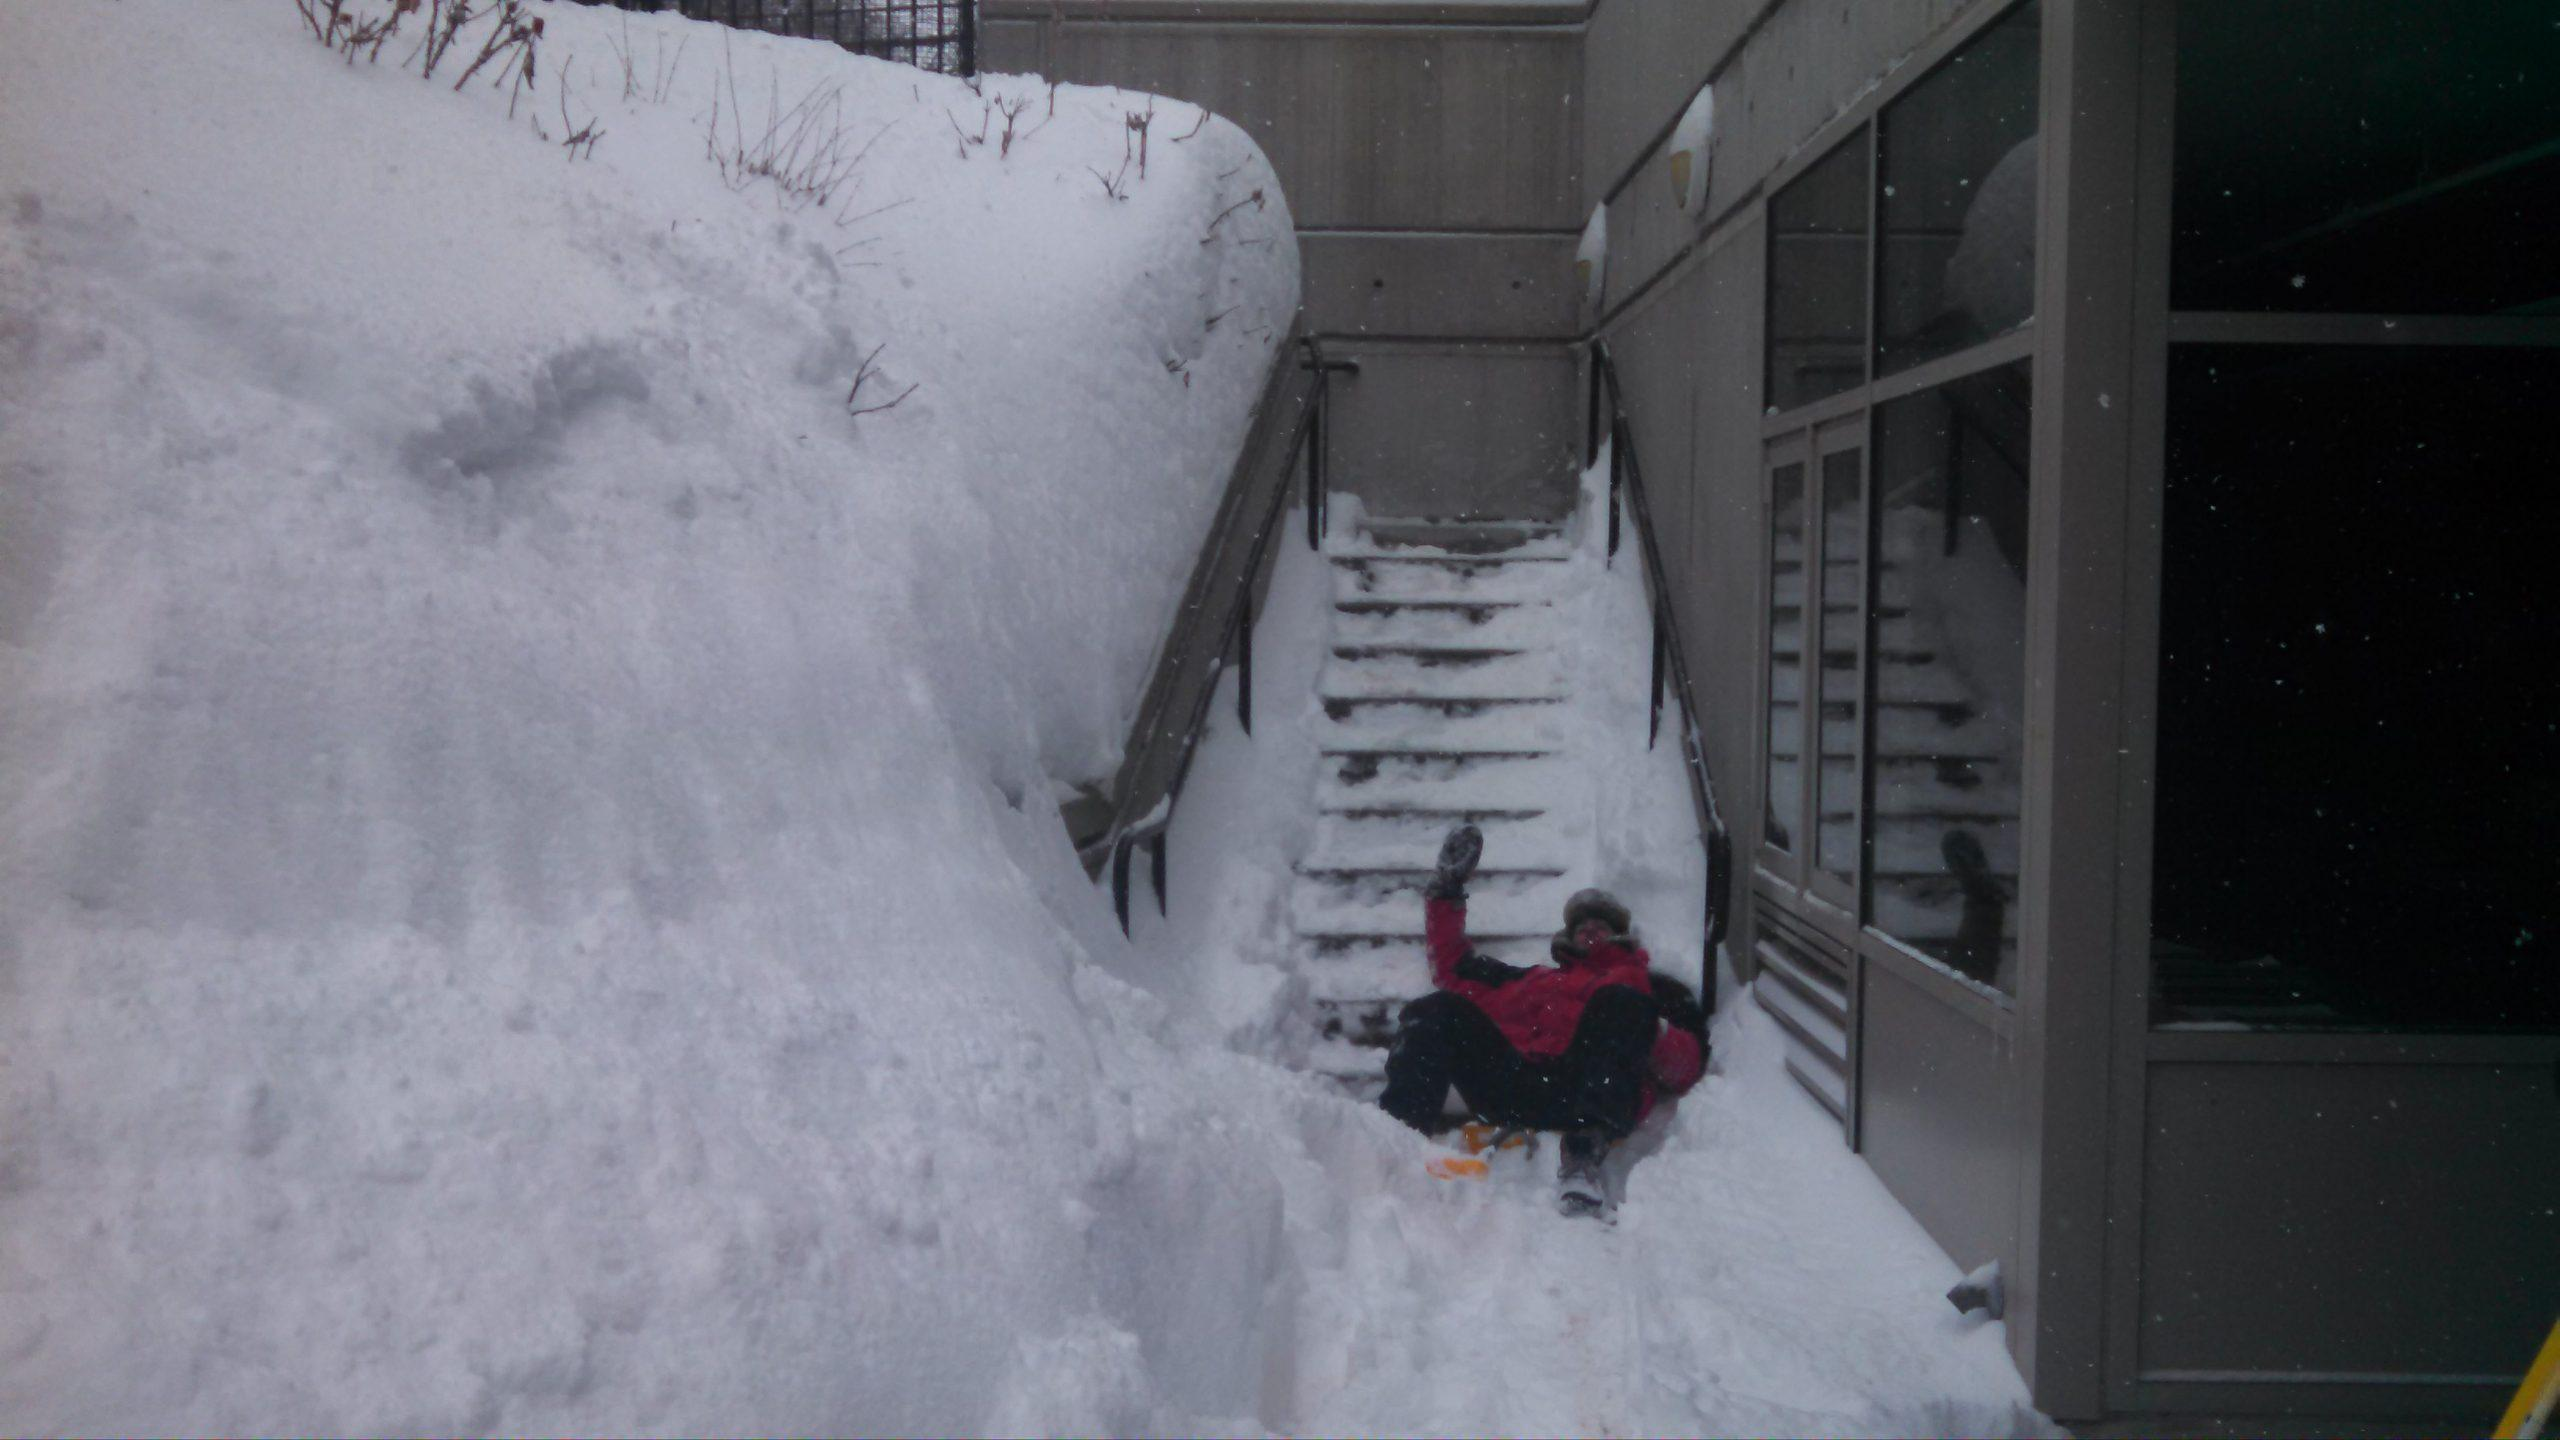 As+most+of+us+slept+in%2C+the+maintenance+crew+came+to+work+early%2C+digging+%28quite+literally%29+the+community+out+of+one+of+the+harshest+winters+in+Boston%E2%80%99s+history.%0A